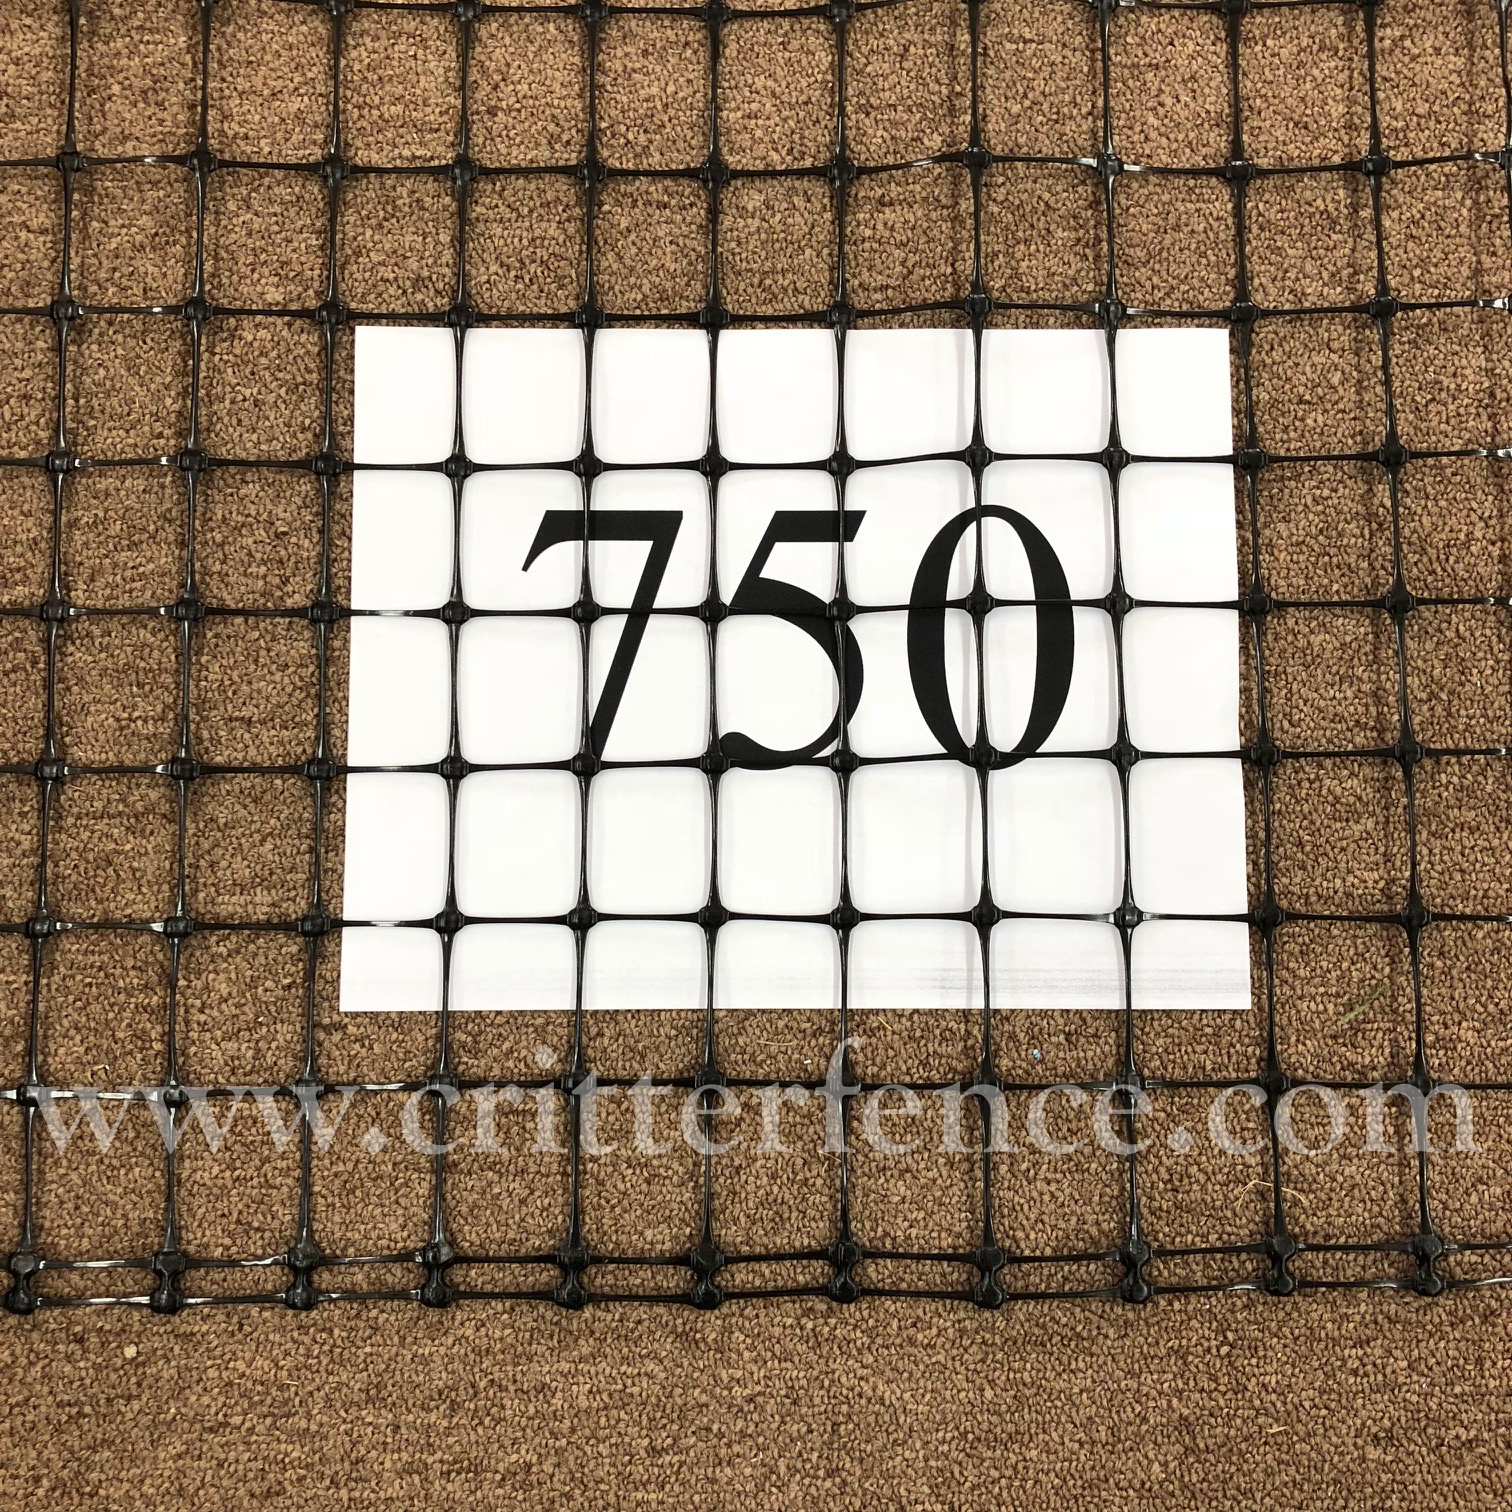 Critterfence 750 RB 8 x 330 Critterfence 750 8 x 330 Reinforced Bottom